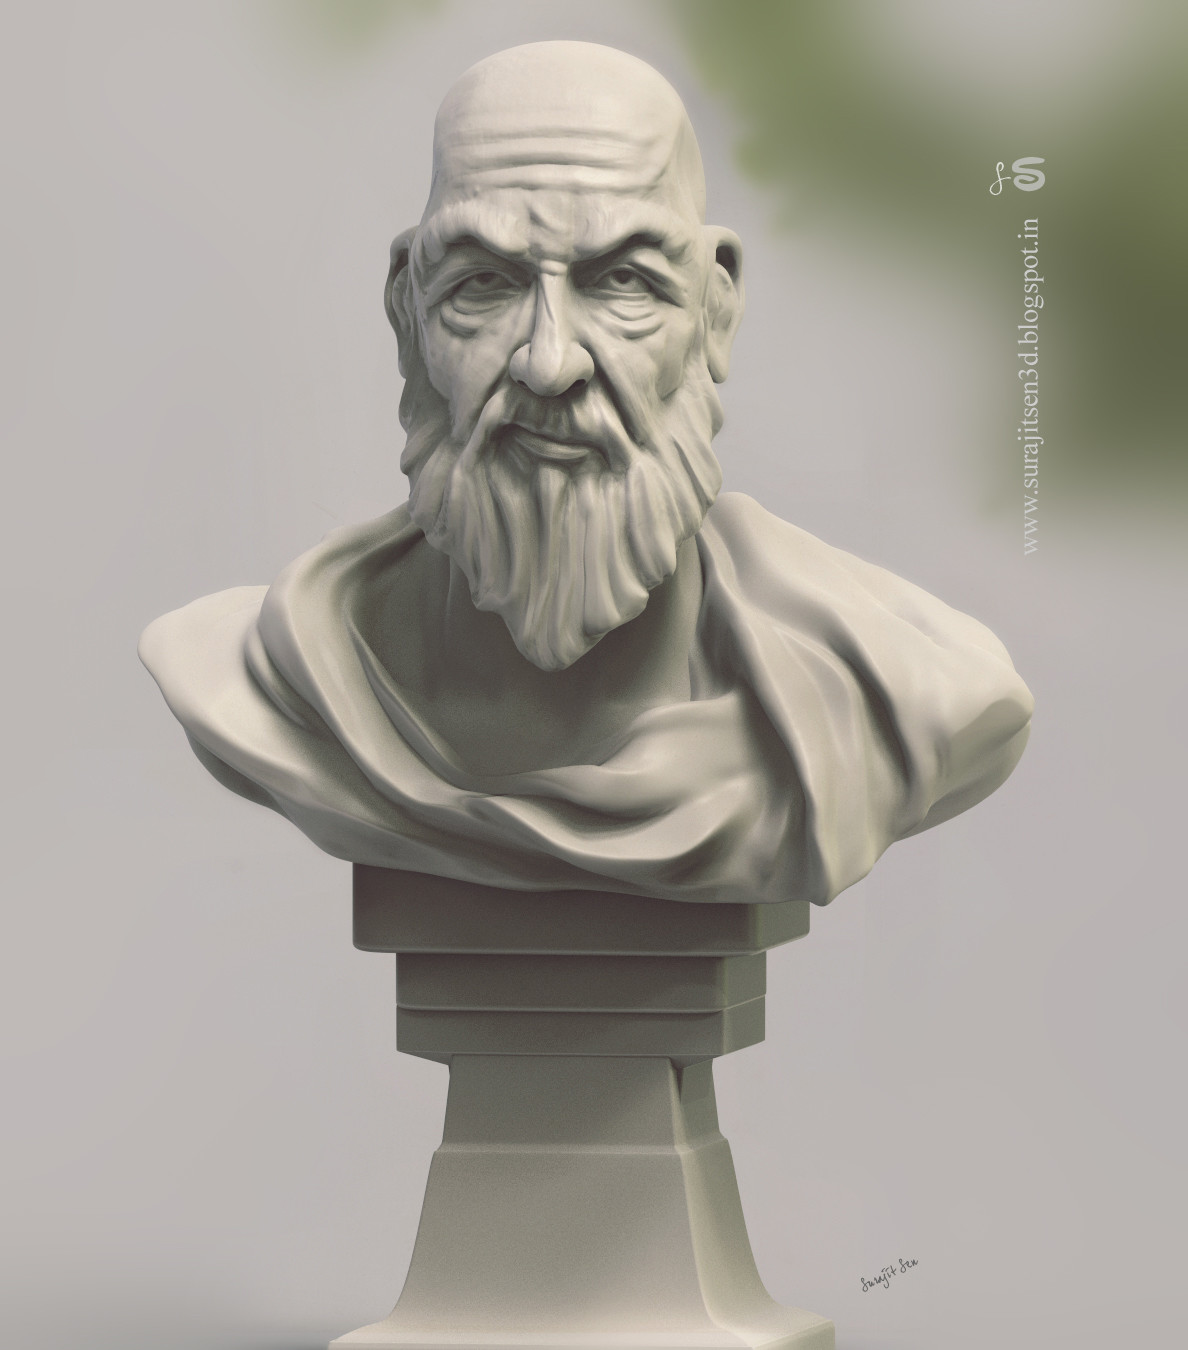 Surajit sen speed sculpt study teacher by surajit sen